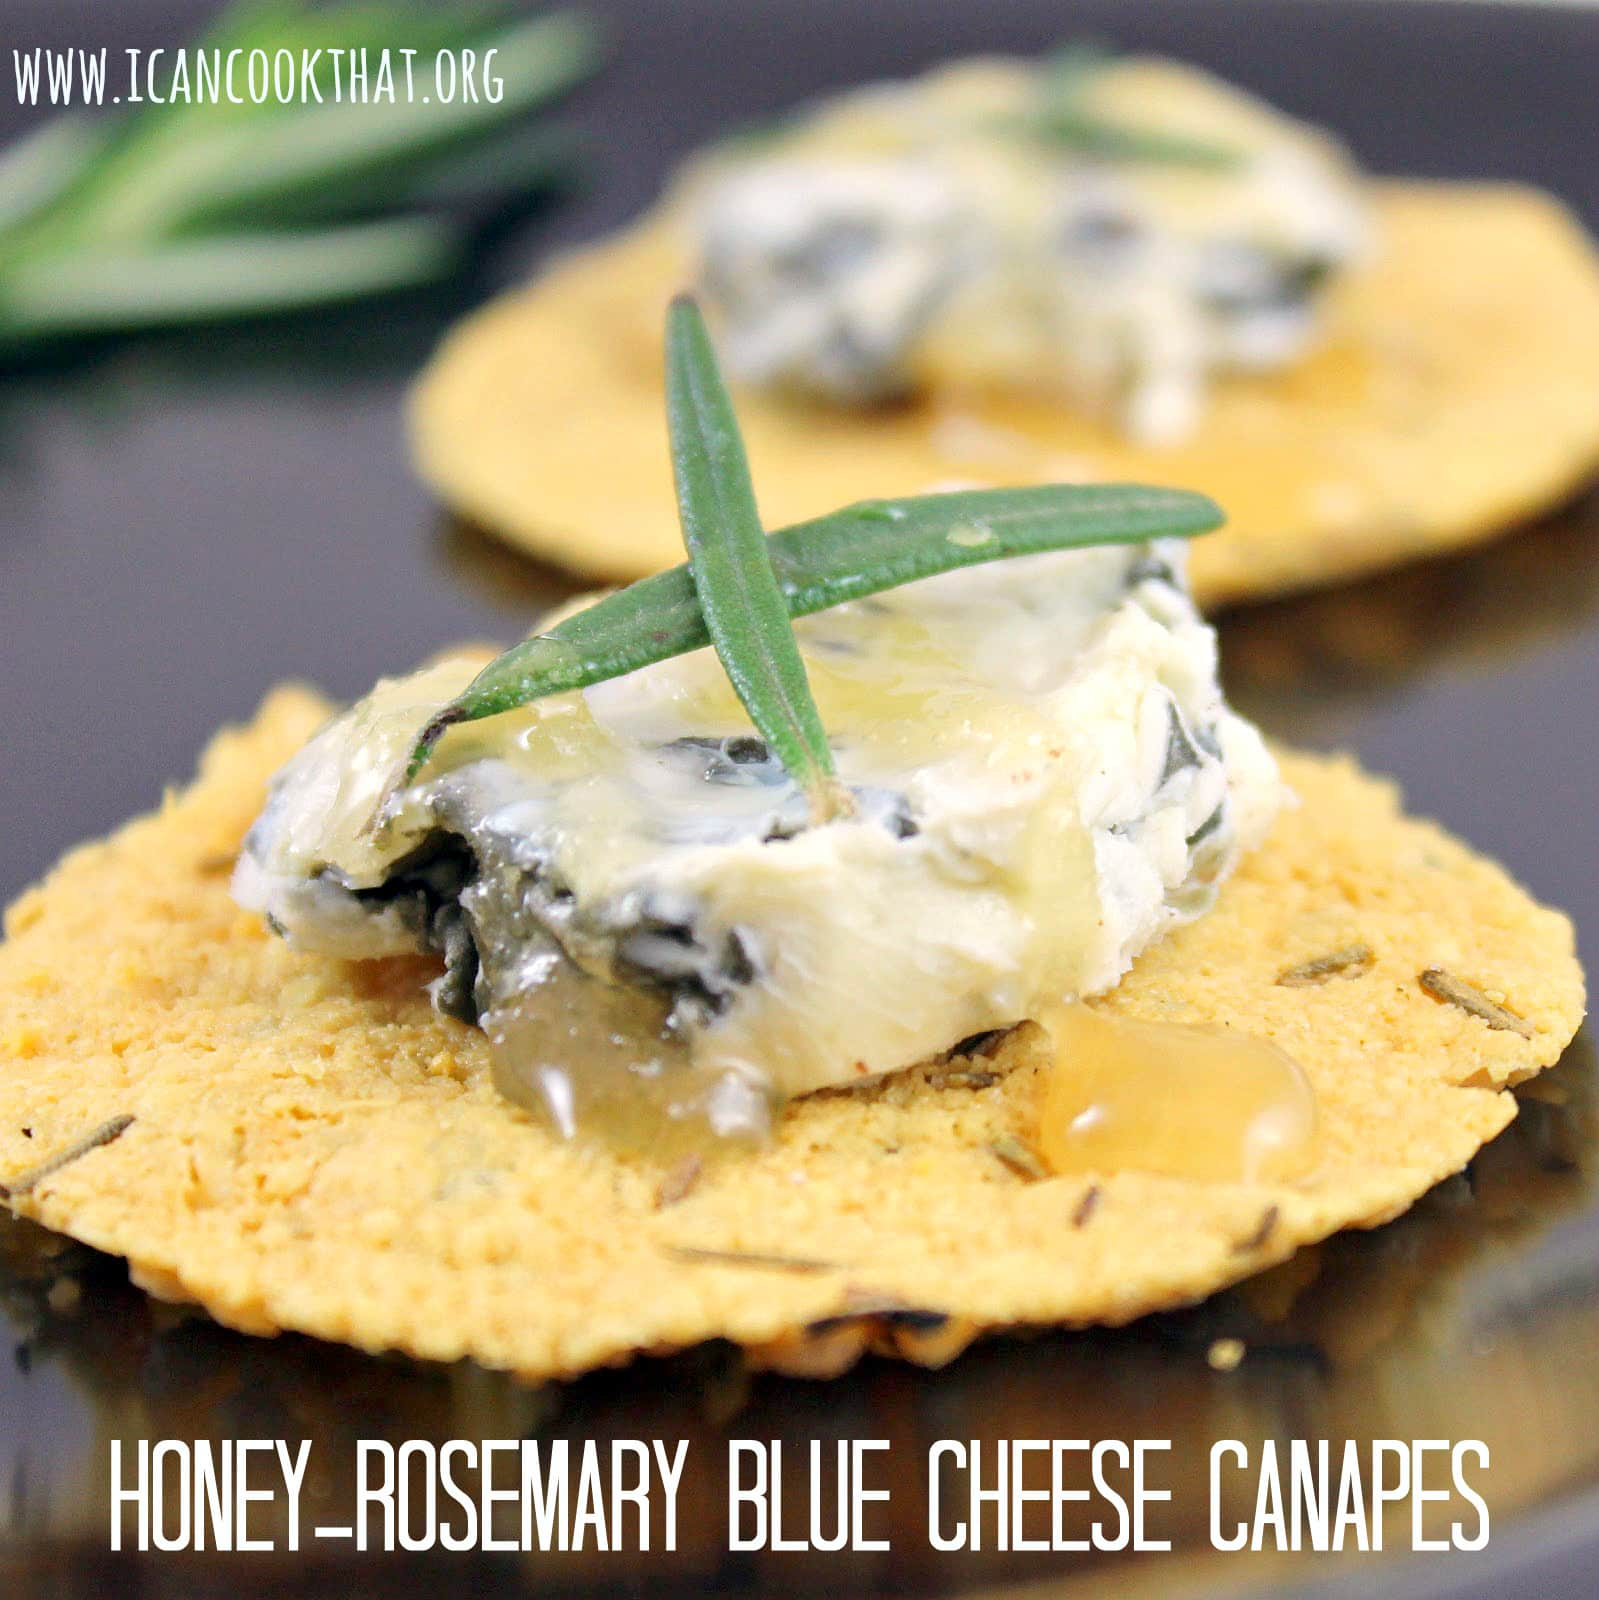 Honey rosemary blue cheese canapes i can cook that for Canape with cheese